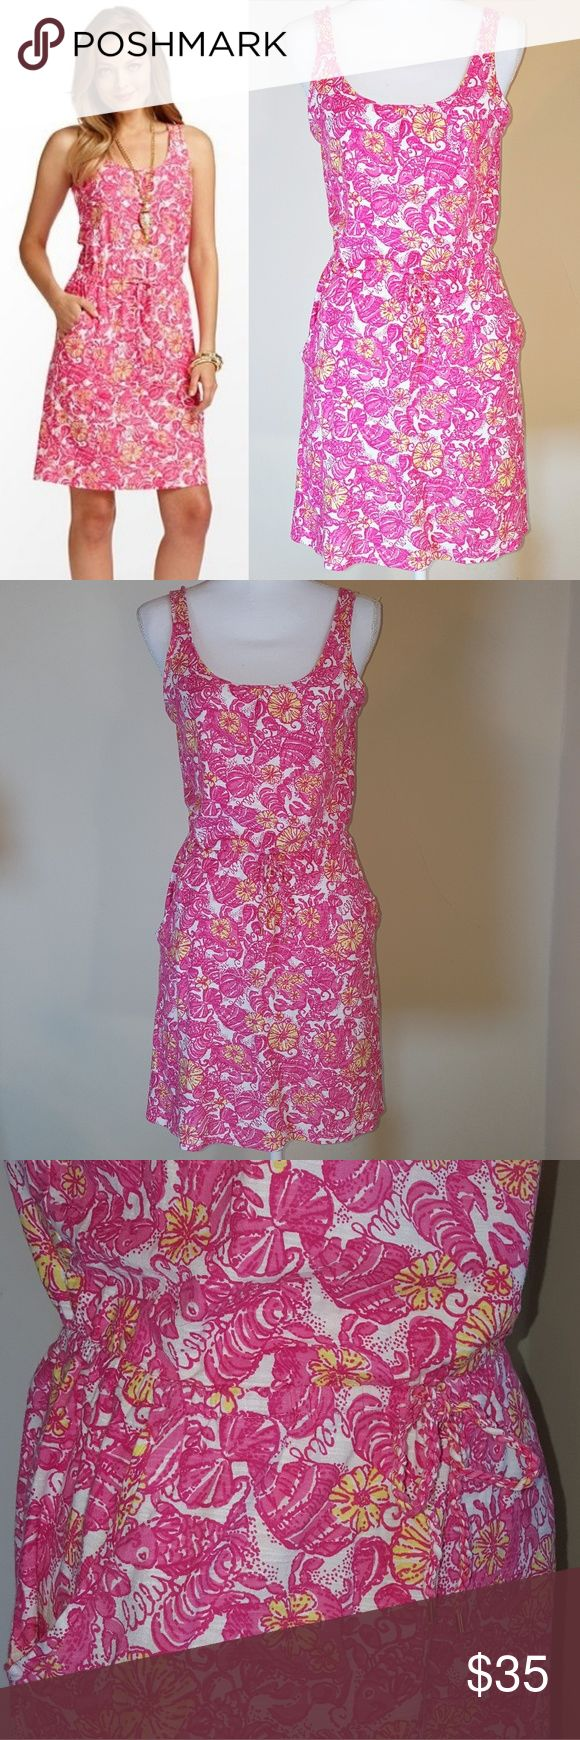 "Lilly Pulitzer Kori Dress - ""Chum Bucket"" From Lilly Pulitzer, ""It's all about cut and color! Not your blonde locks, cutie... that easy throw-on cut of that dress! The c-o-l-o-r that brings a sparkle to your eye. The Kori has that IT factor, making all of your other summer sundresses jealous.  Tank dress with faux drawstring at waist. 18"" from natural waist to hem. Machine wash cold. 40/1 Slubby Cotton Jersey (100% Cotton). Imported.  Style #:?32564"" Also has cute pockets. Sold out online…"